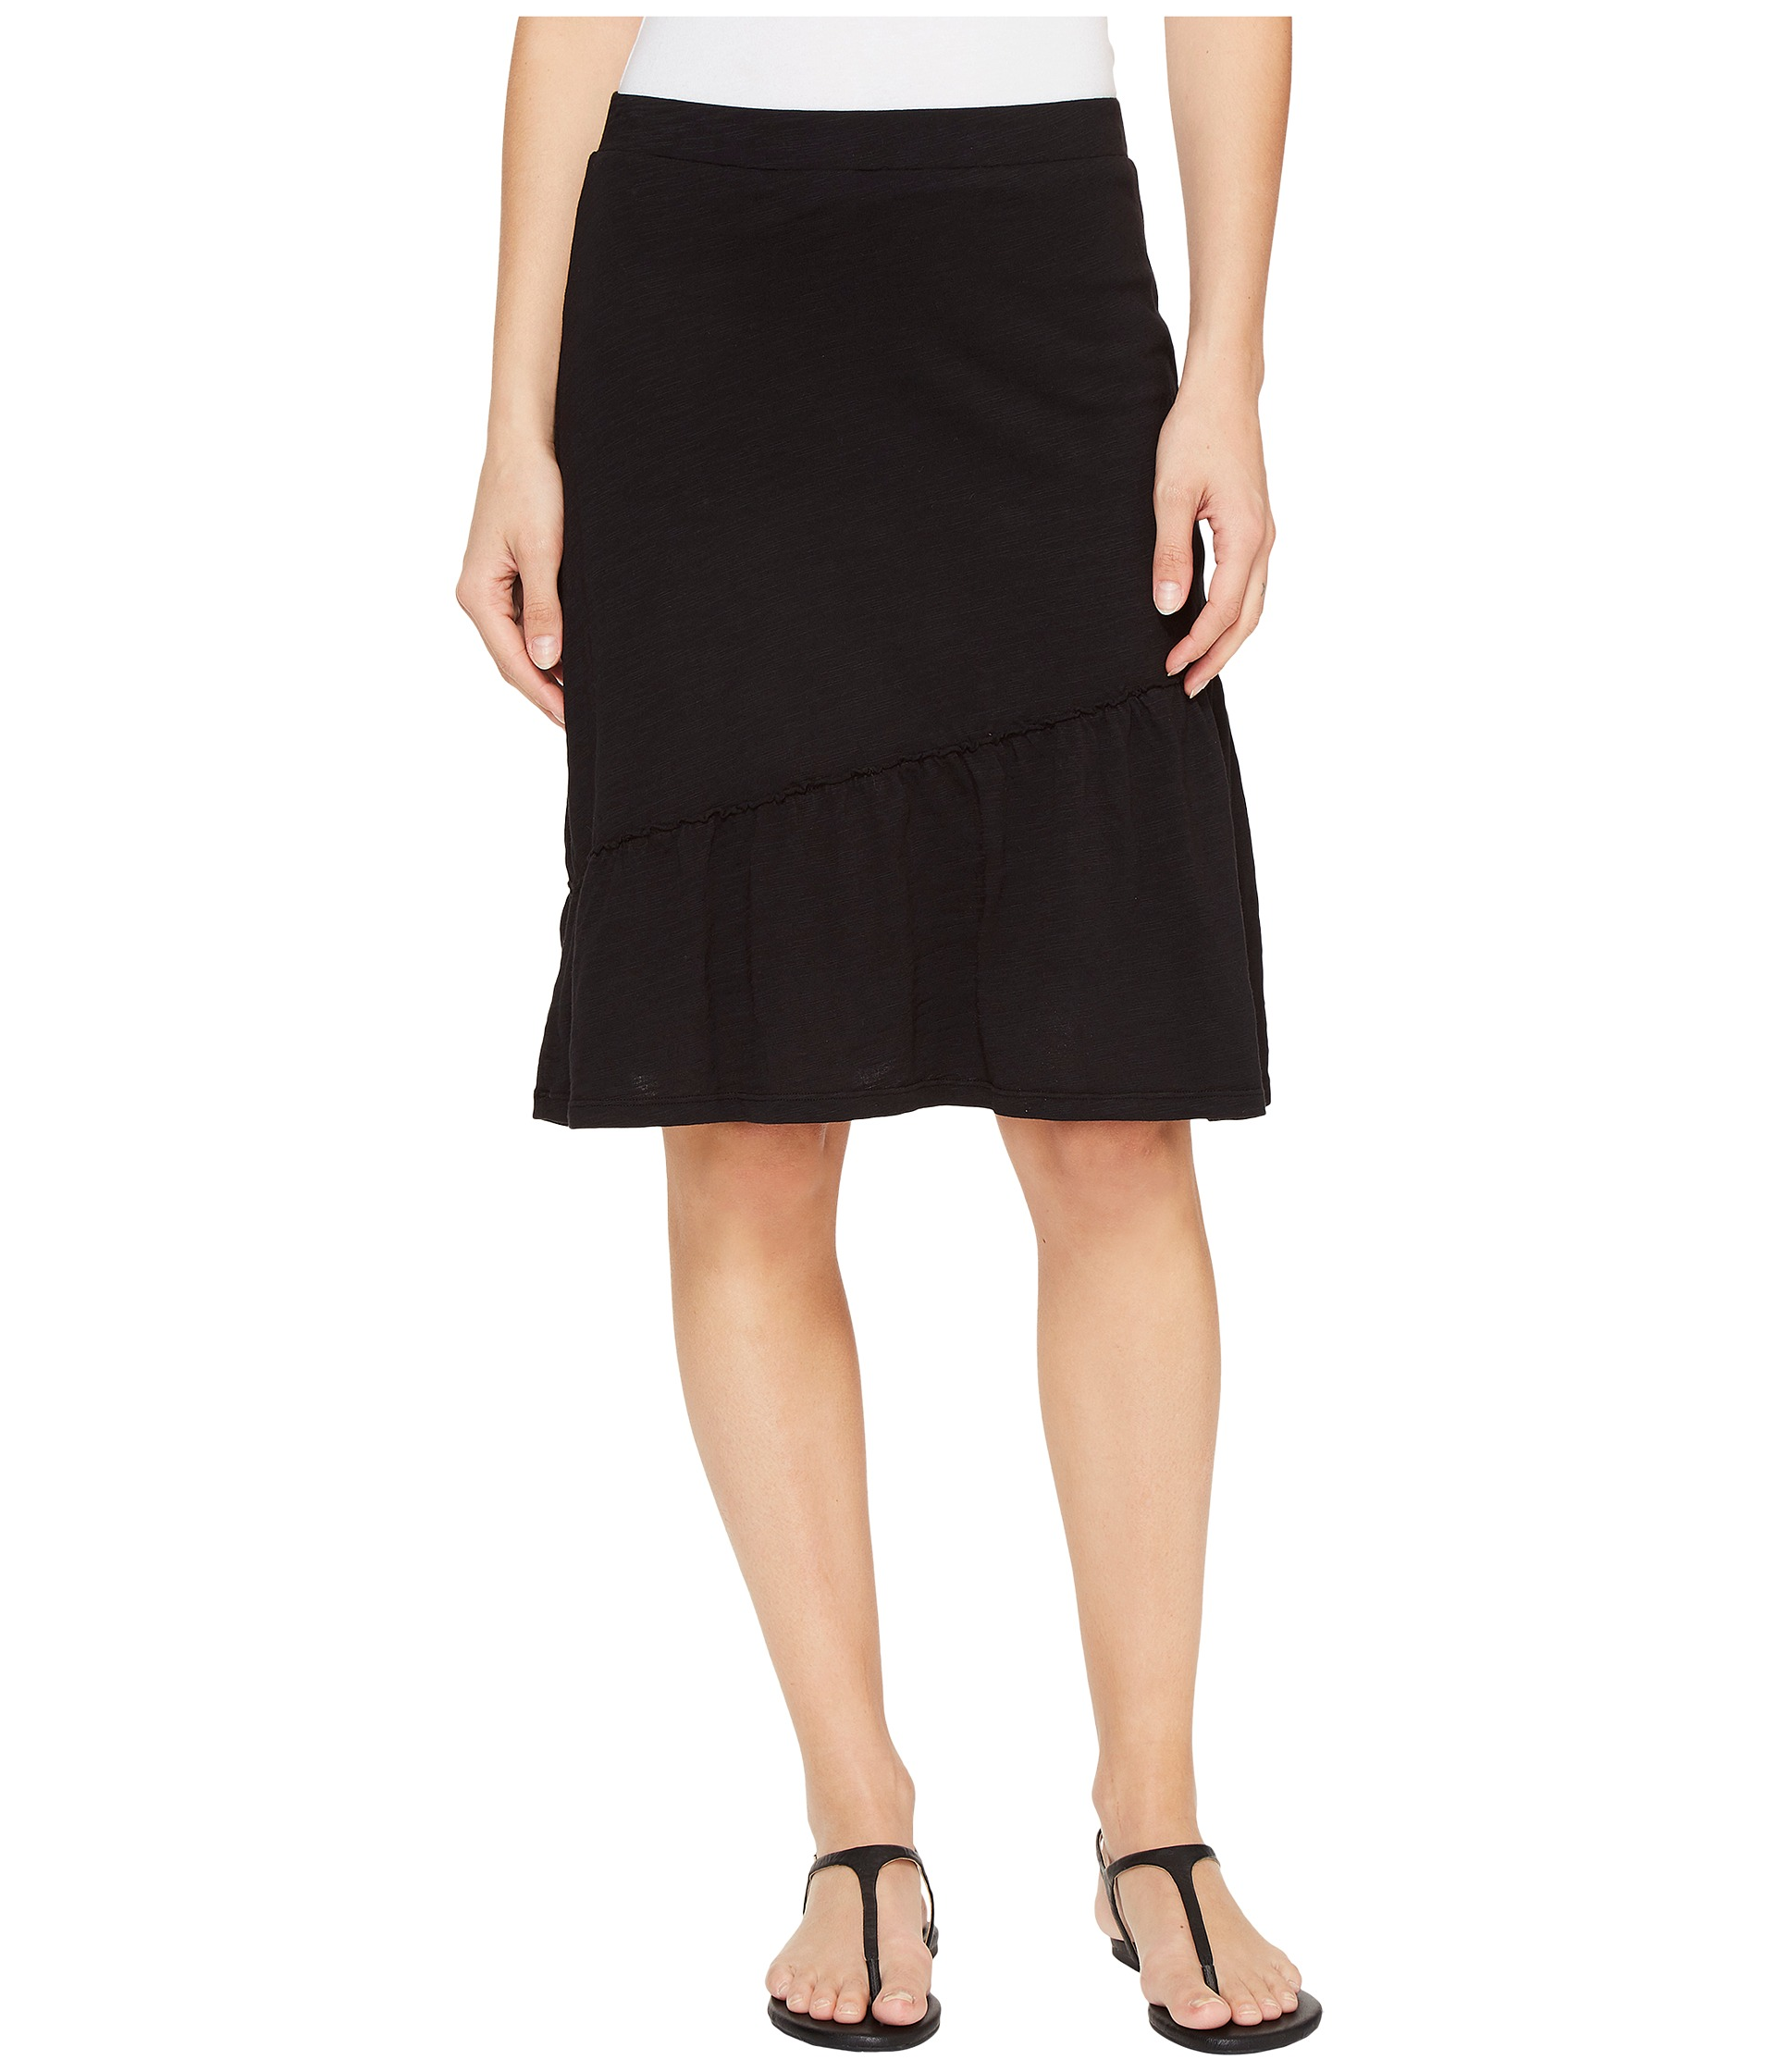 Find great deals on eBay for jersey skirt. Shop with confidence.